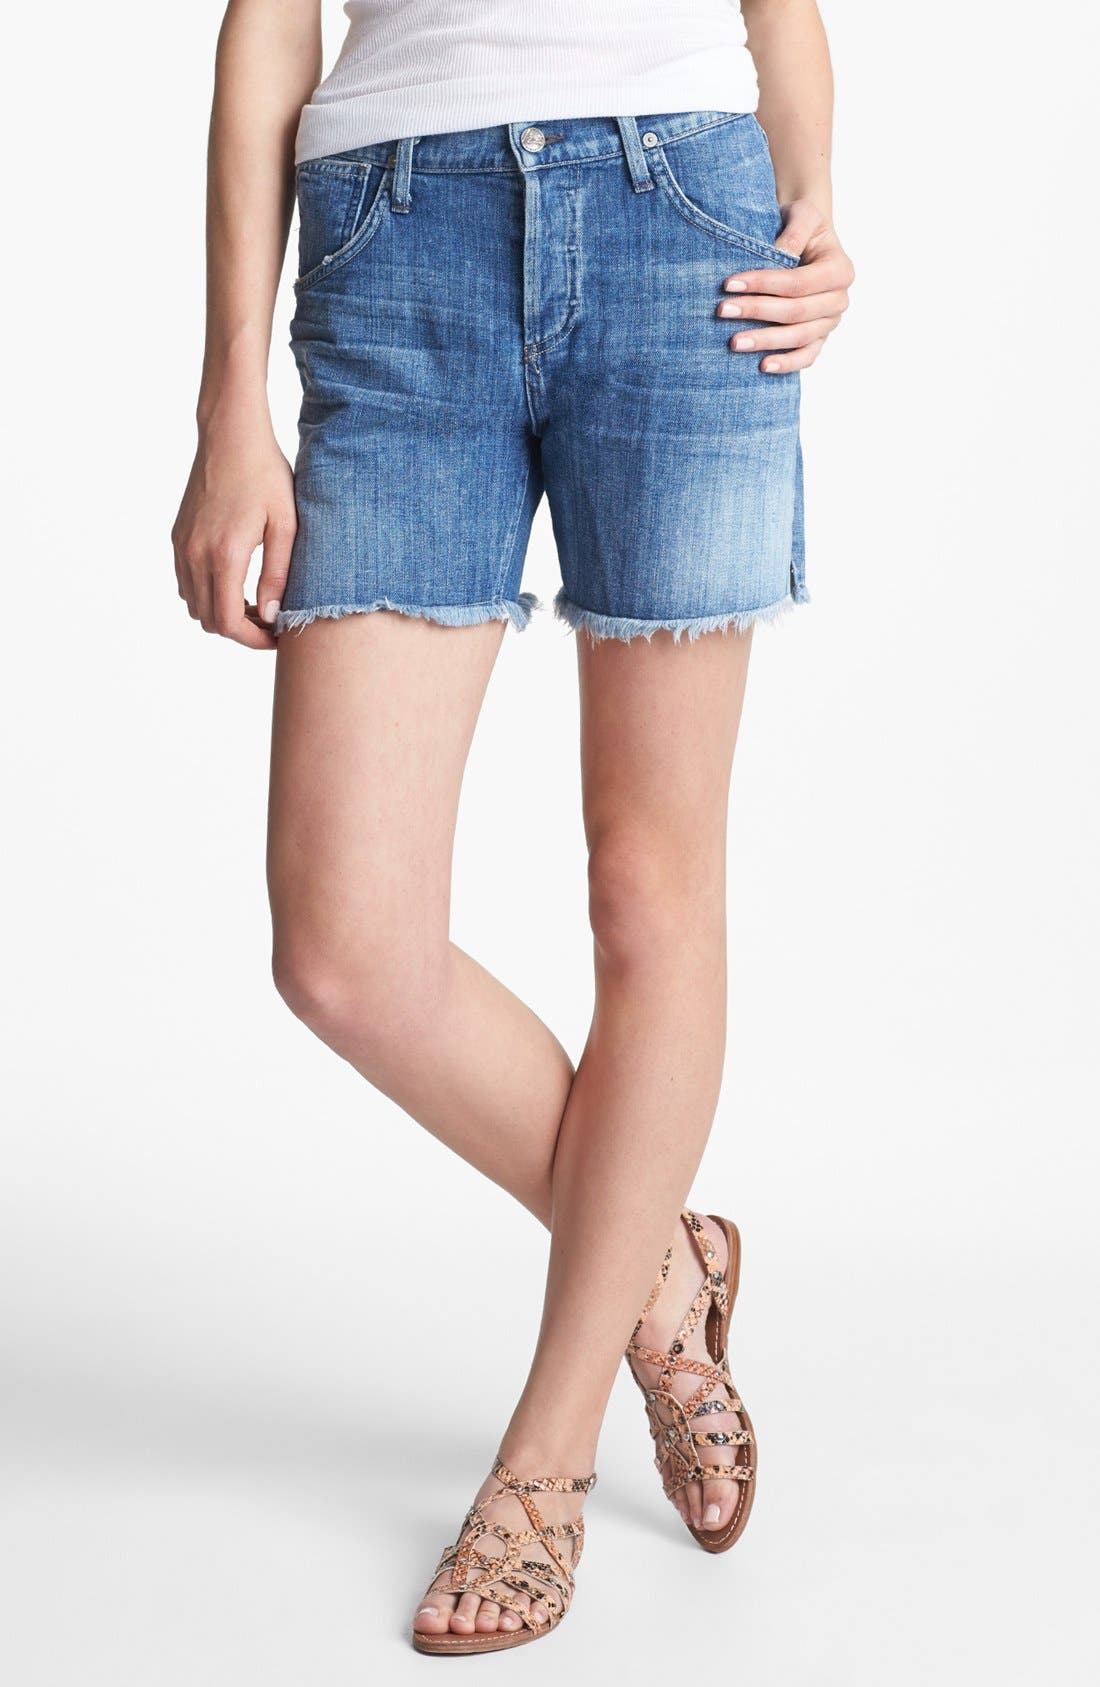 Alternate Image 1 Selected - Citizens of Humanity 'Ines' Cutoff Shorts (Heirloom)